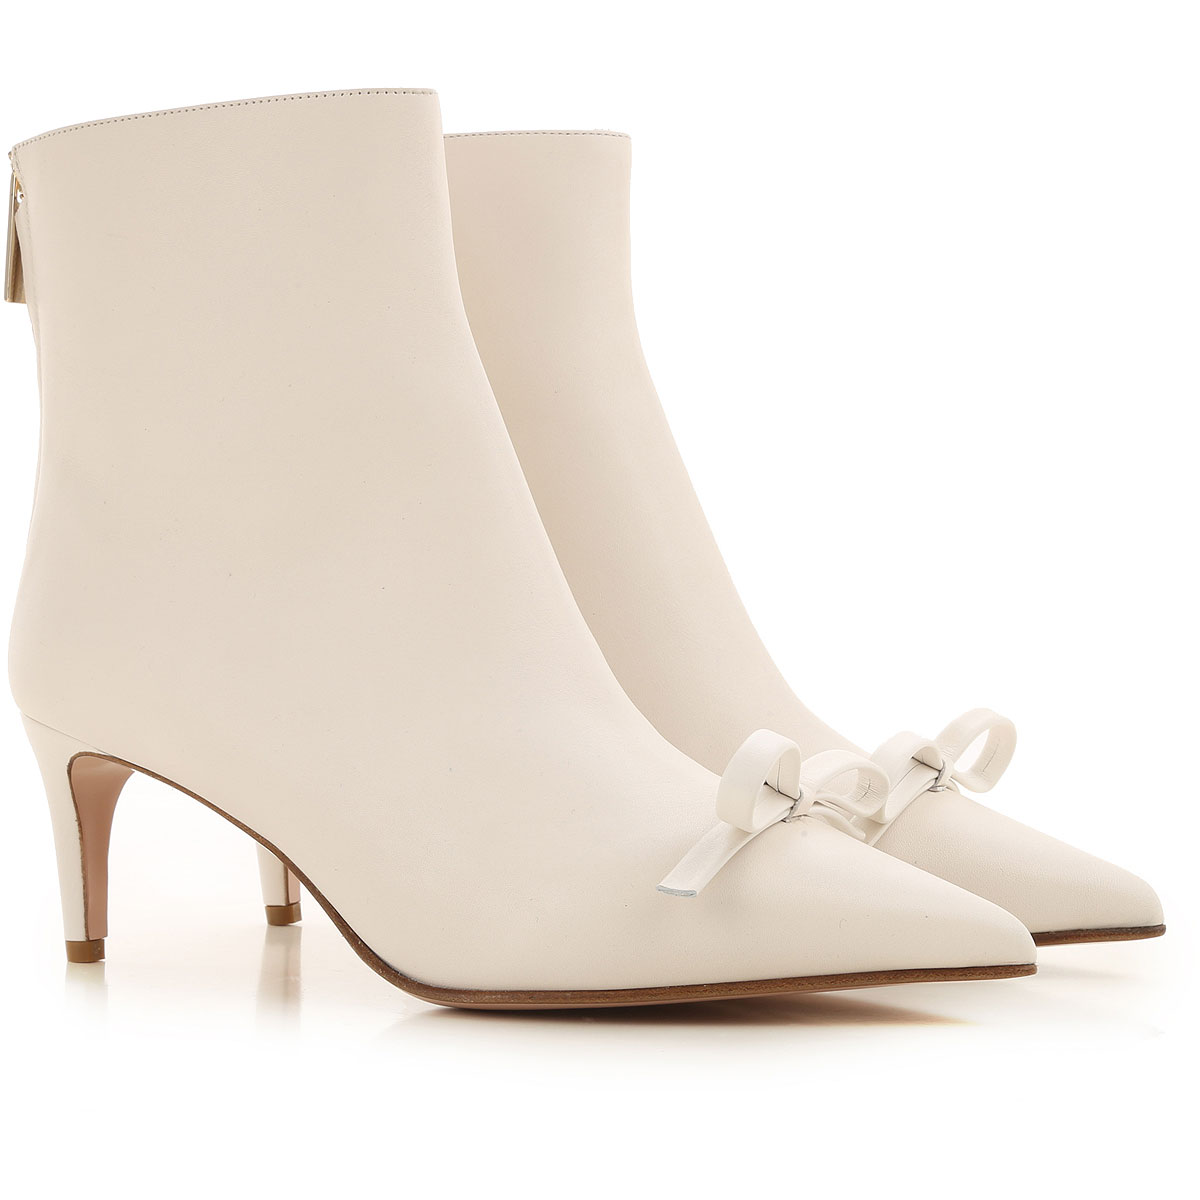 RED Valentino Boots for Women, Booties On Sale, Milk, Leather, 2019, 6 7 8 8.5 9